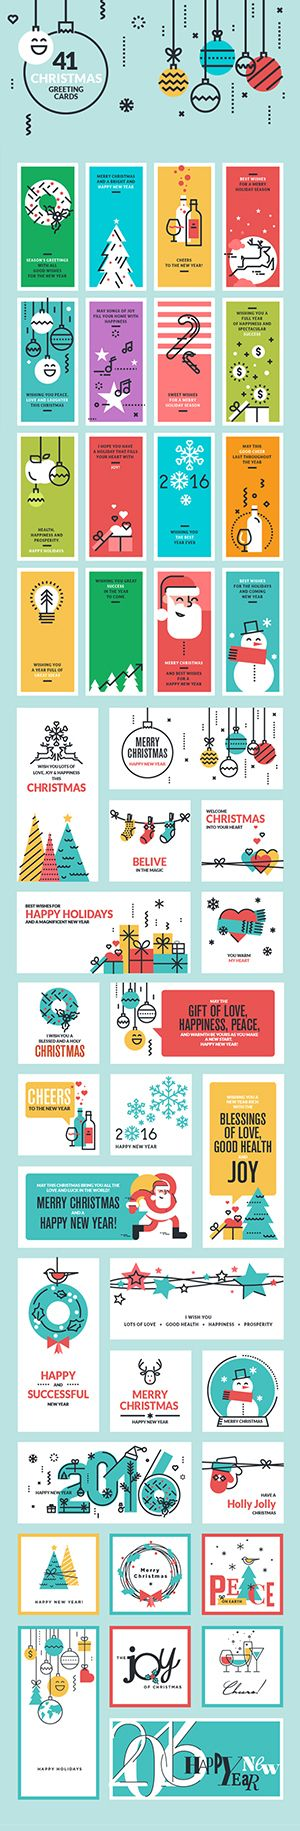 Flat Line Design Christmas Greeting Cards and Banners on Behance